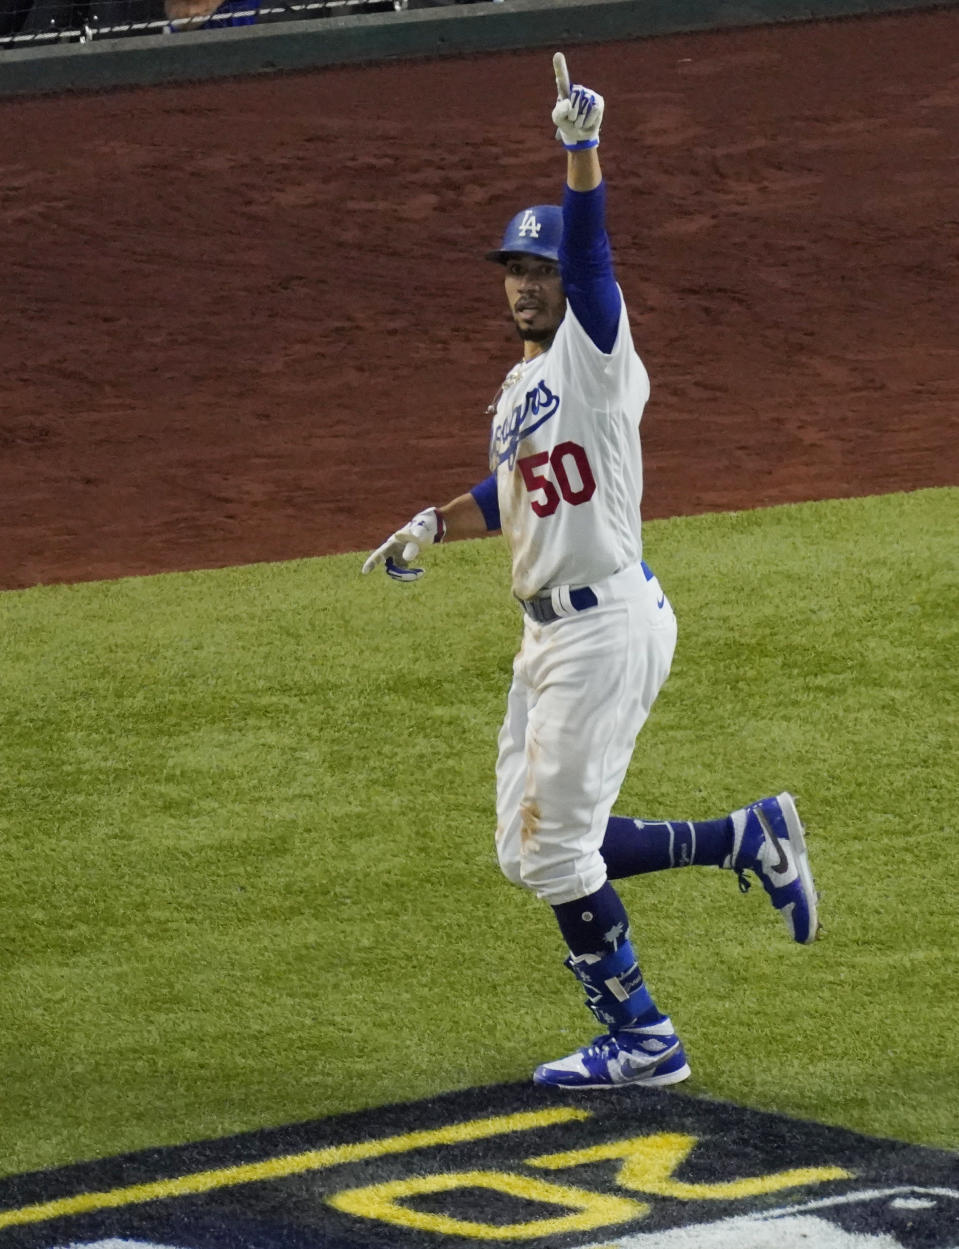 Los Angeles Dodgers' Mookie Betts celebrates a home run against the Tampa Bay Rays during the sixth inning in Game 1 of the baseball World Series Tuesday, Oct. 20, 2020, in Arlington, Texas. (AP Photo/Sue Ogrocki)